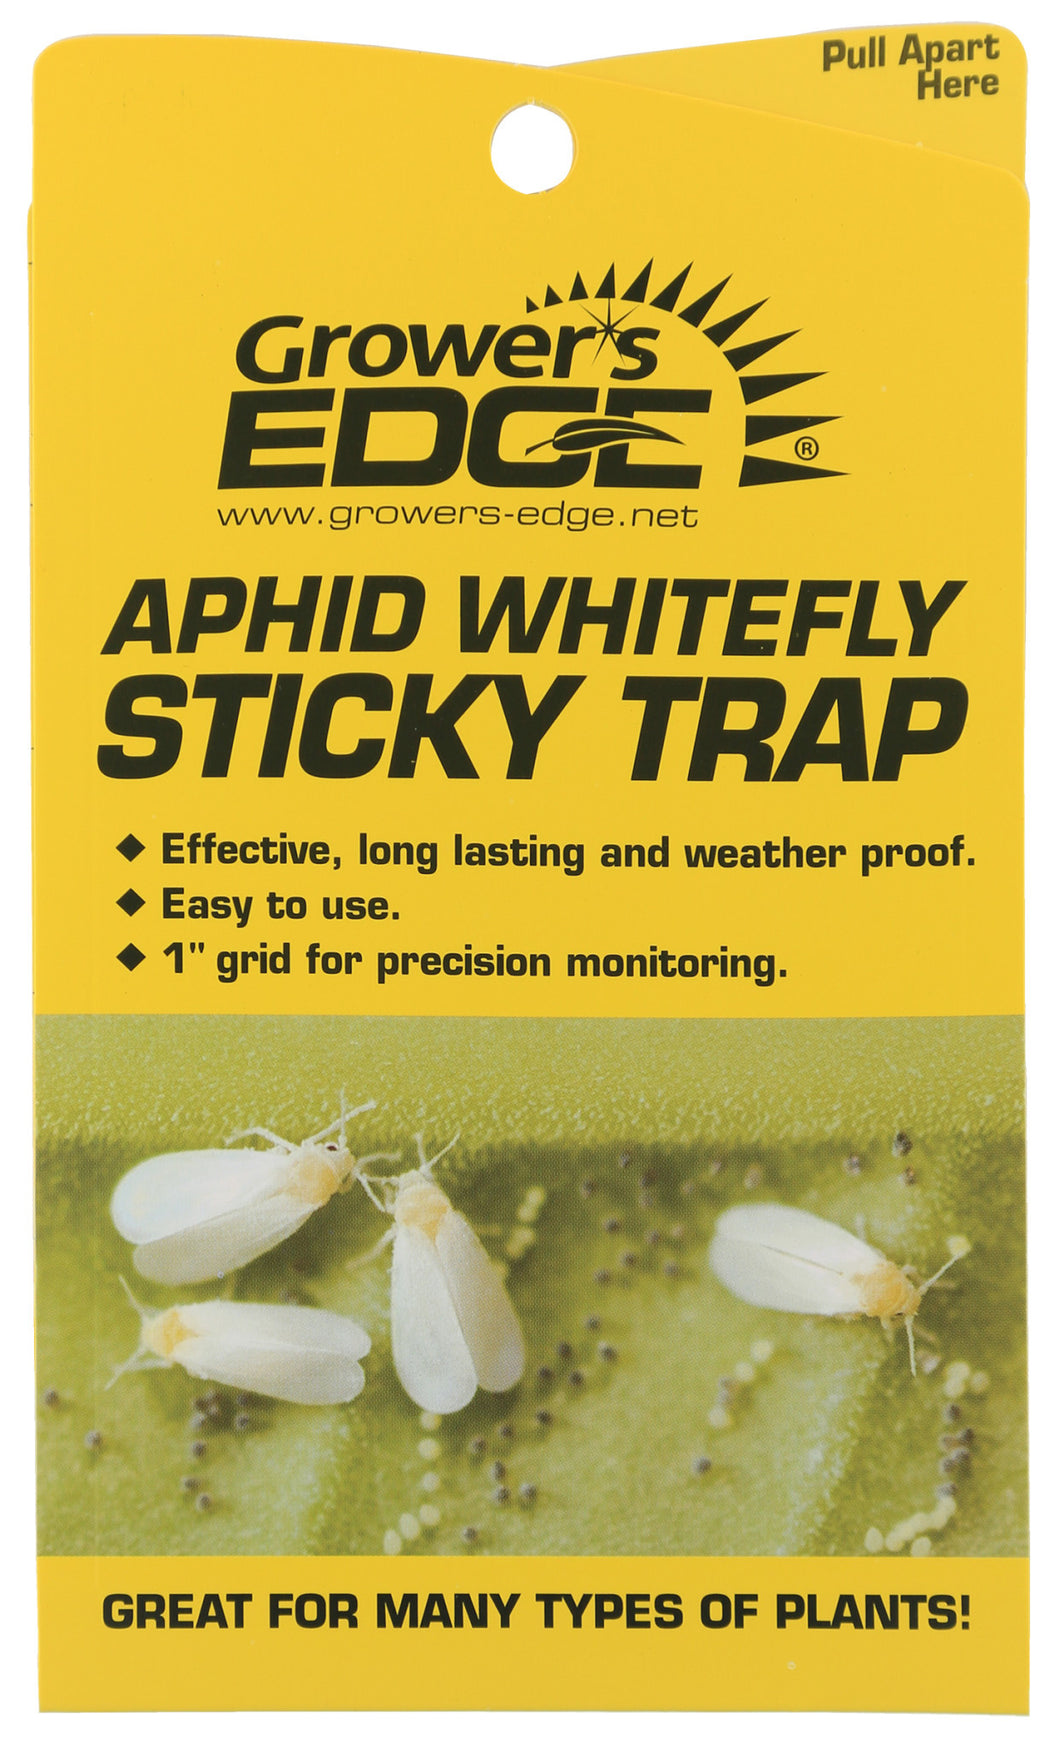 Sticky Trap Aphid Whitefly